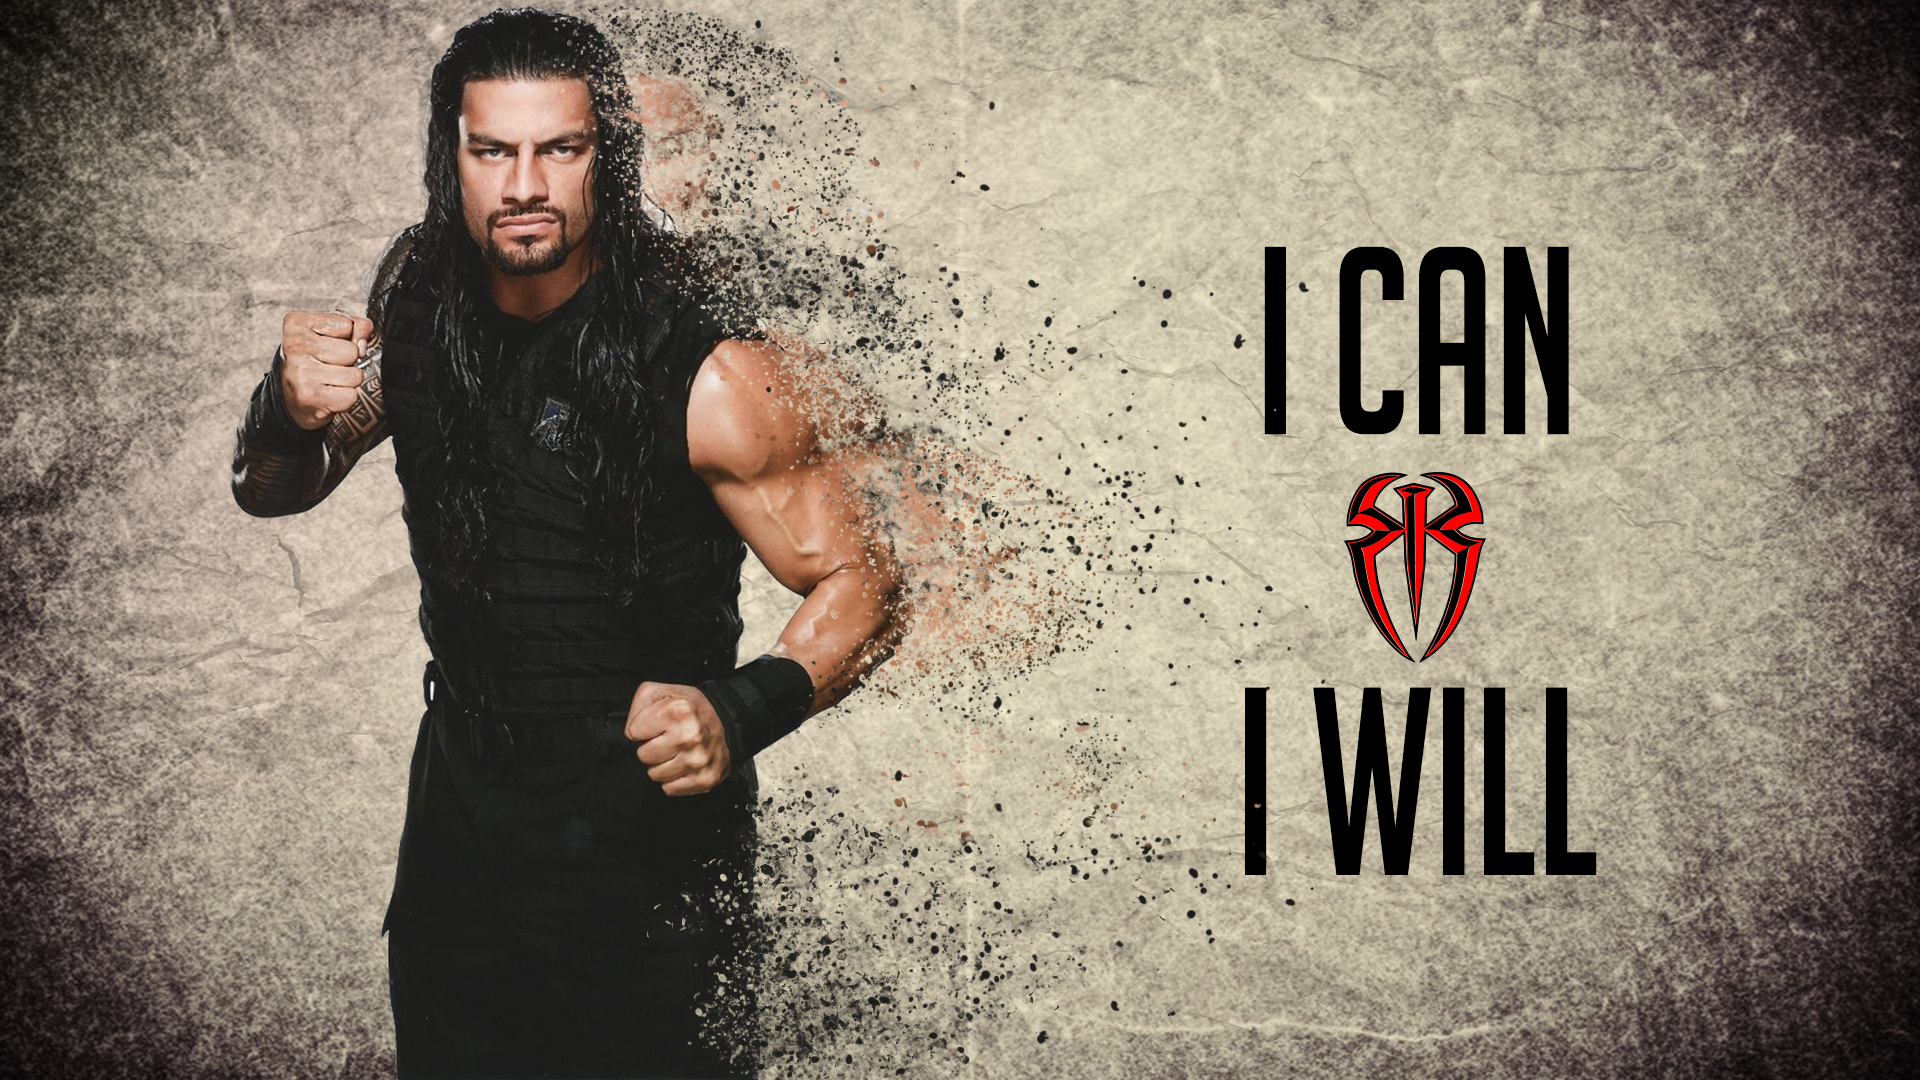 roman i can i will full hd wallpaper